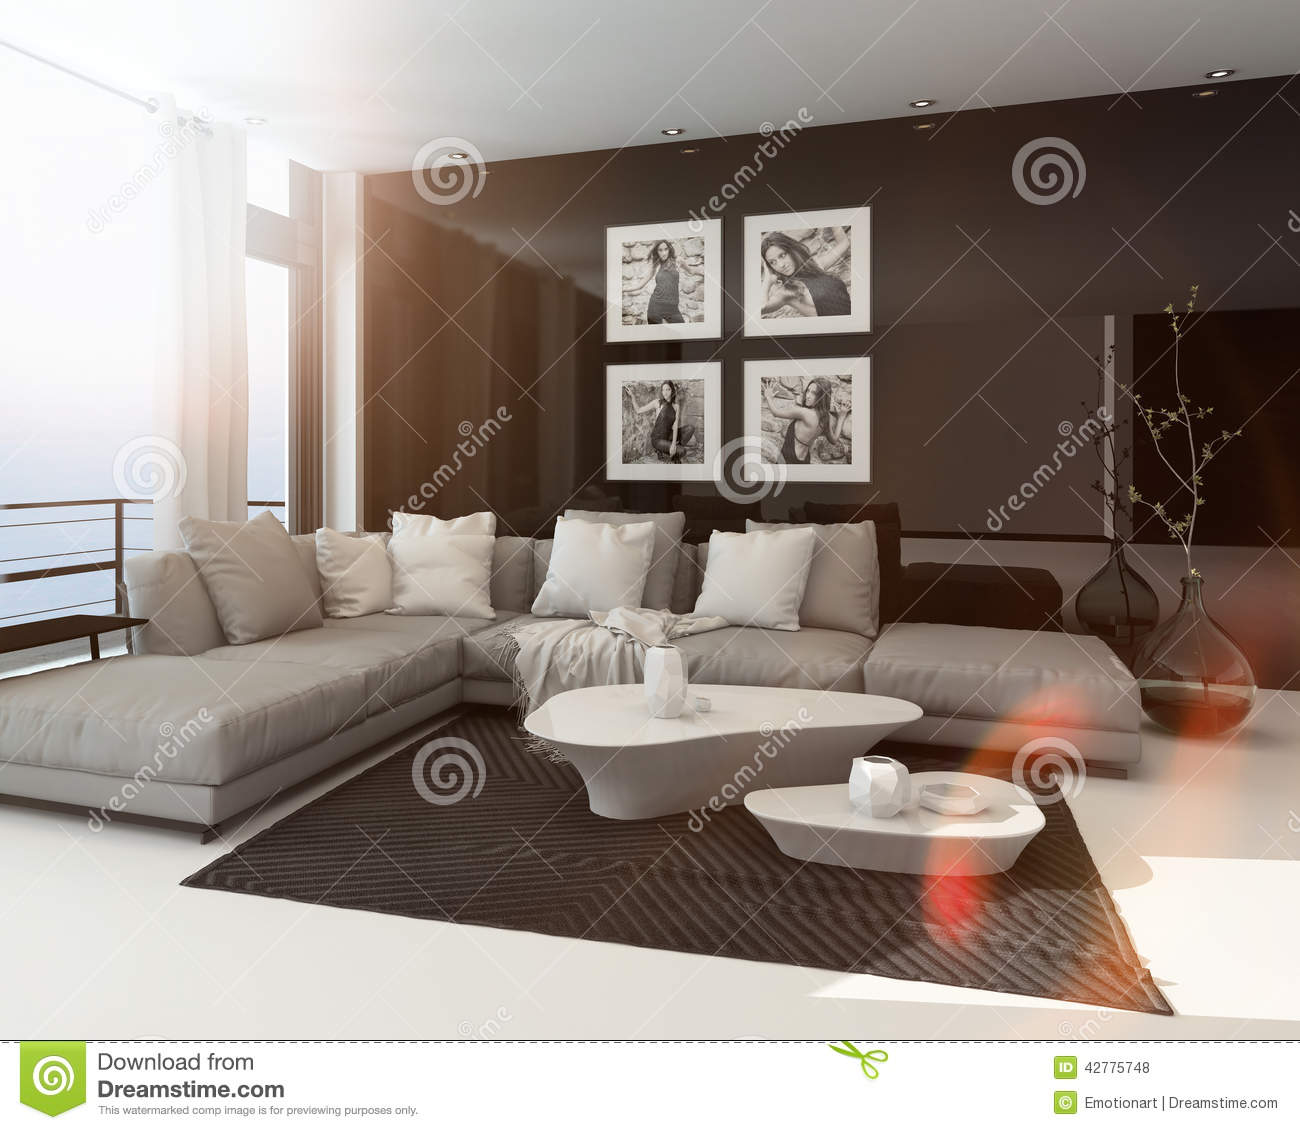 Royalty Free Stock Photos Attic Green Room Low Ceiling Image23300488 in addition Dart Pr896 additionally Stock Photos Living Room Luxury 5 Star Hotel Suite Image13052653 furthermore Collectionddwn Divya Name Letters as well John 1415 If You Lovechristian Wall Decal Quotes P 619. on animals living rooms